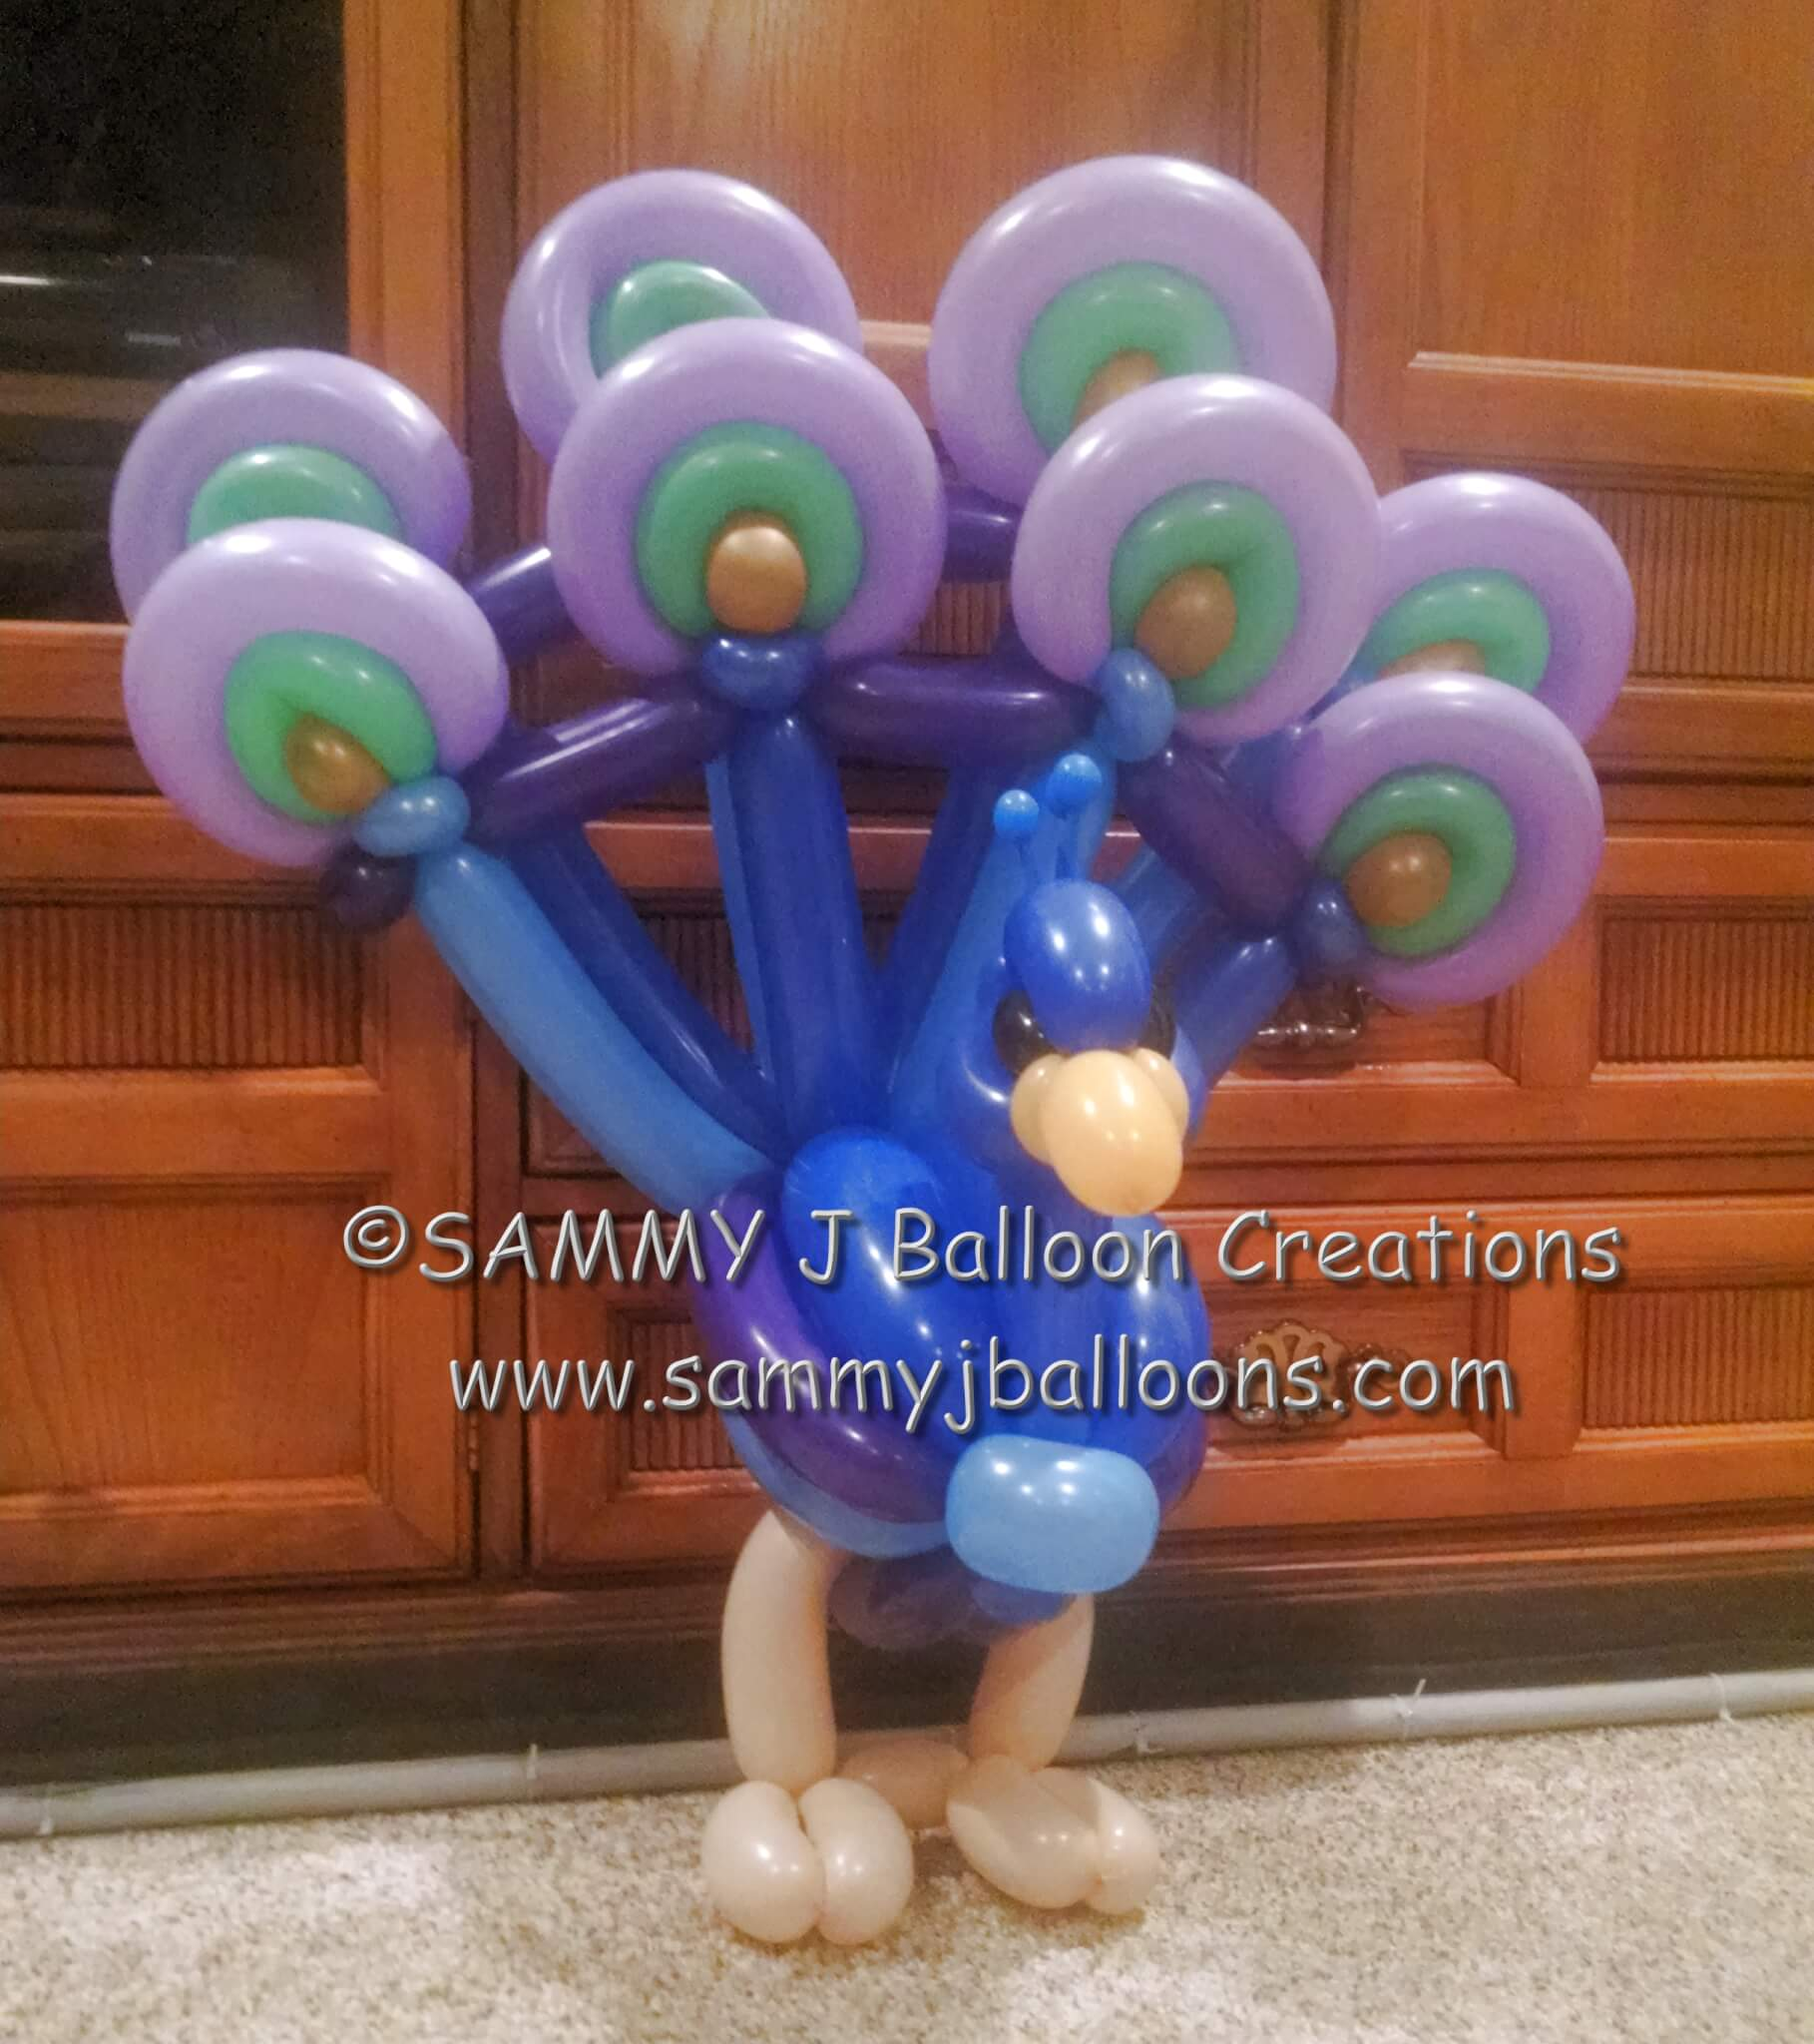 SAMMY J Balloon Creations st louis balloons peacock bird